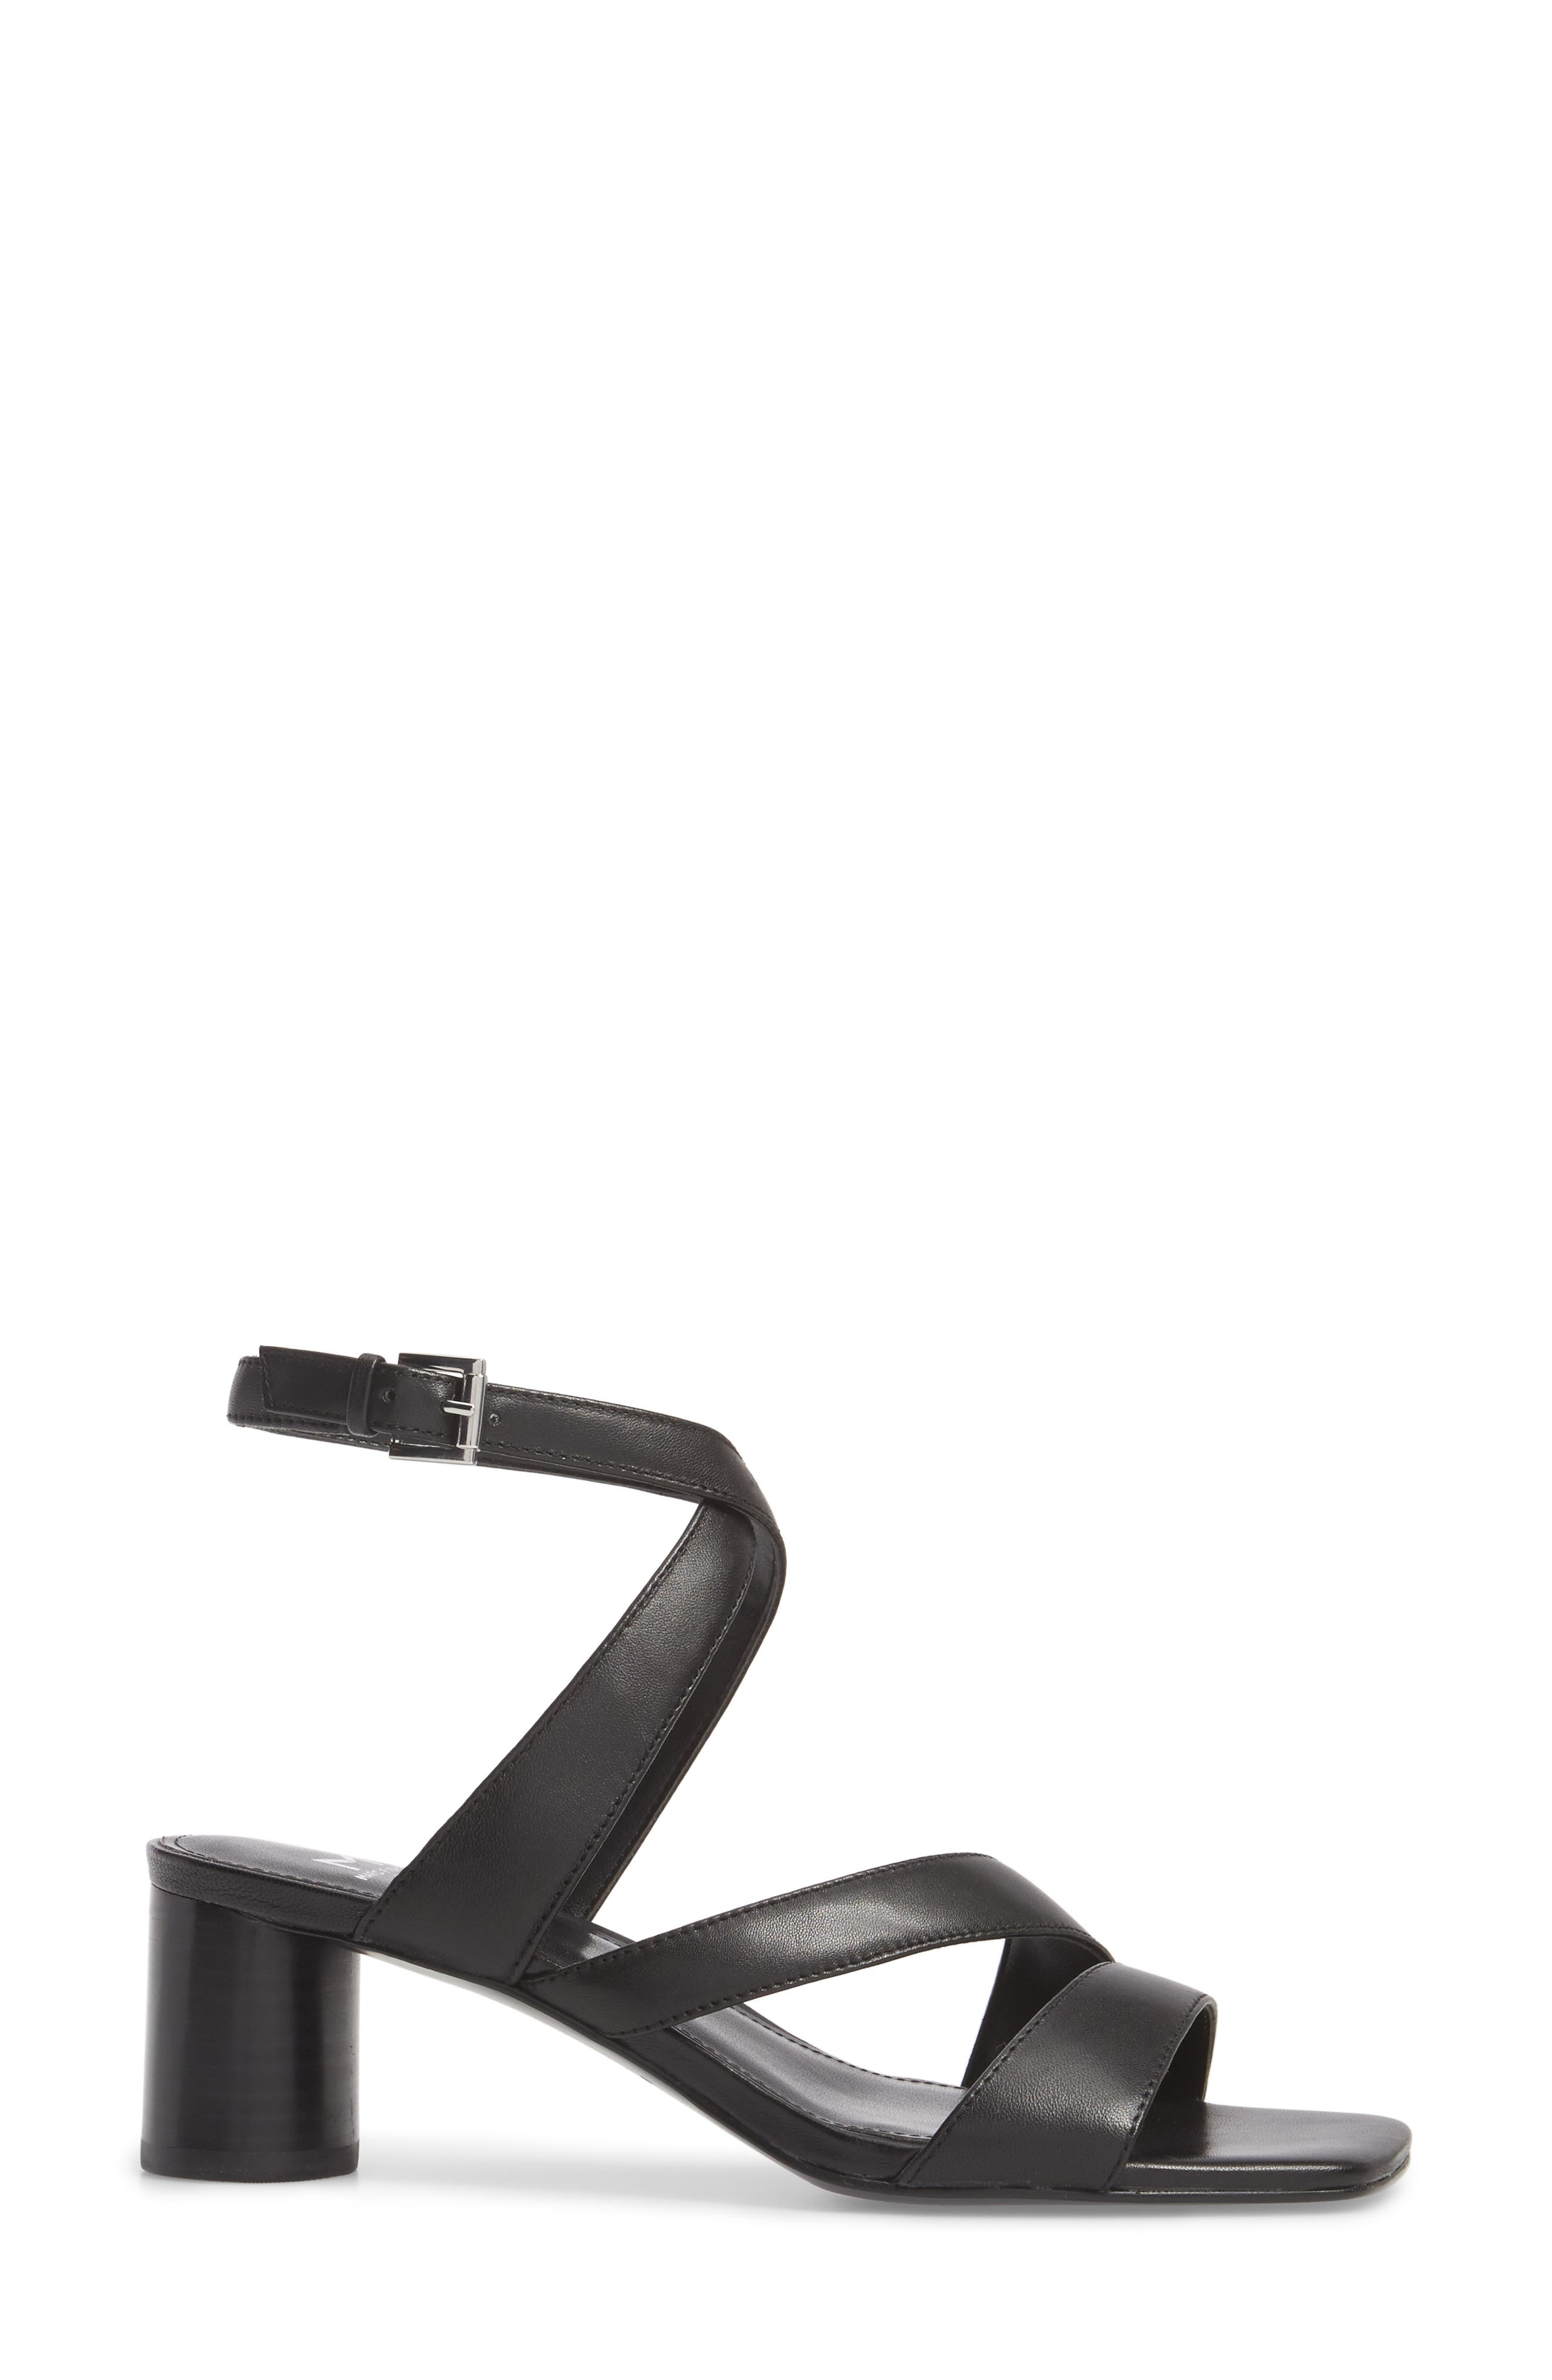 Marc Fischer LTD Idana Strappy Sandal,                             Alternate thumbnail 3, color,                             001